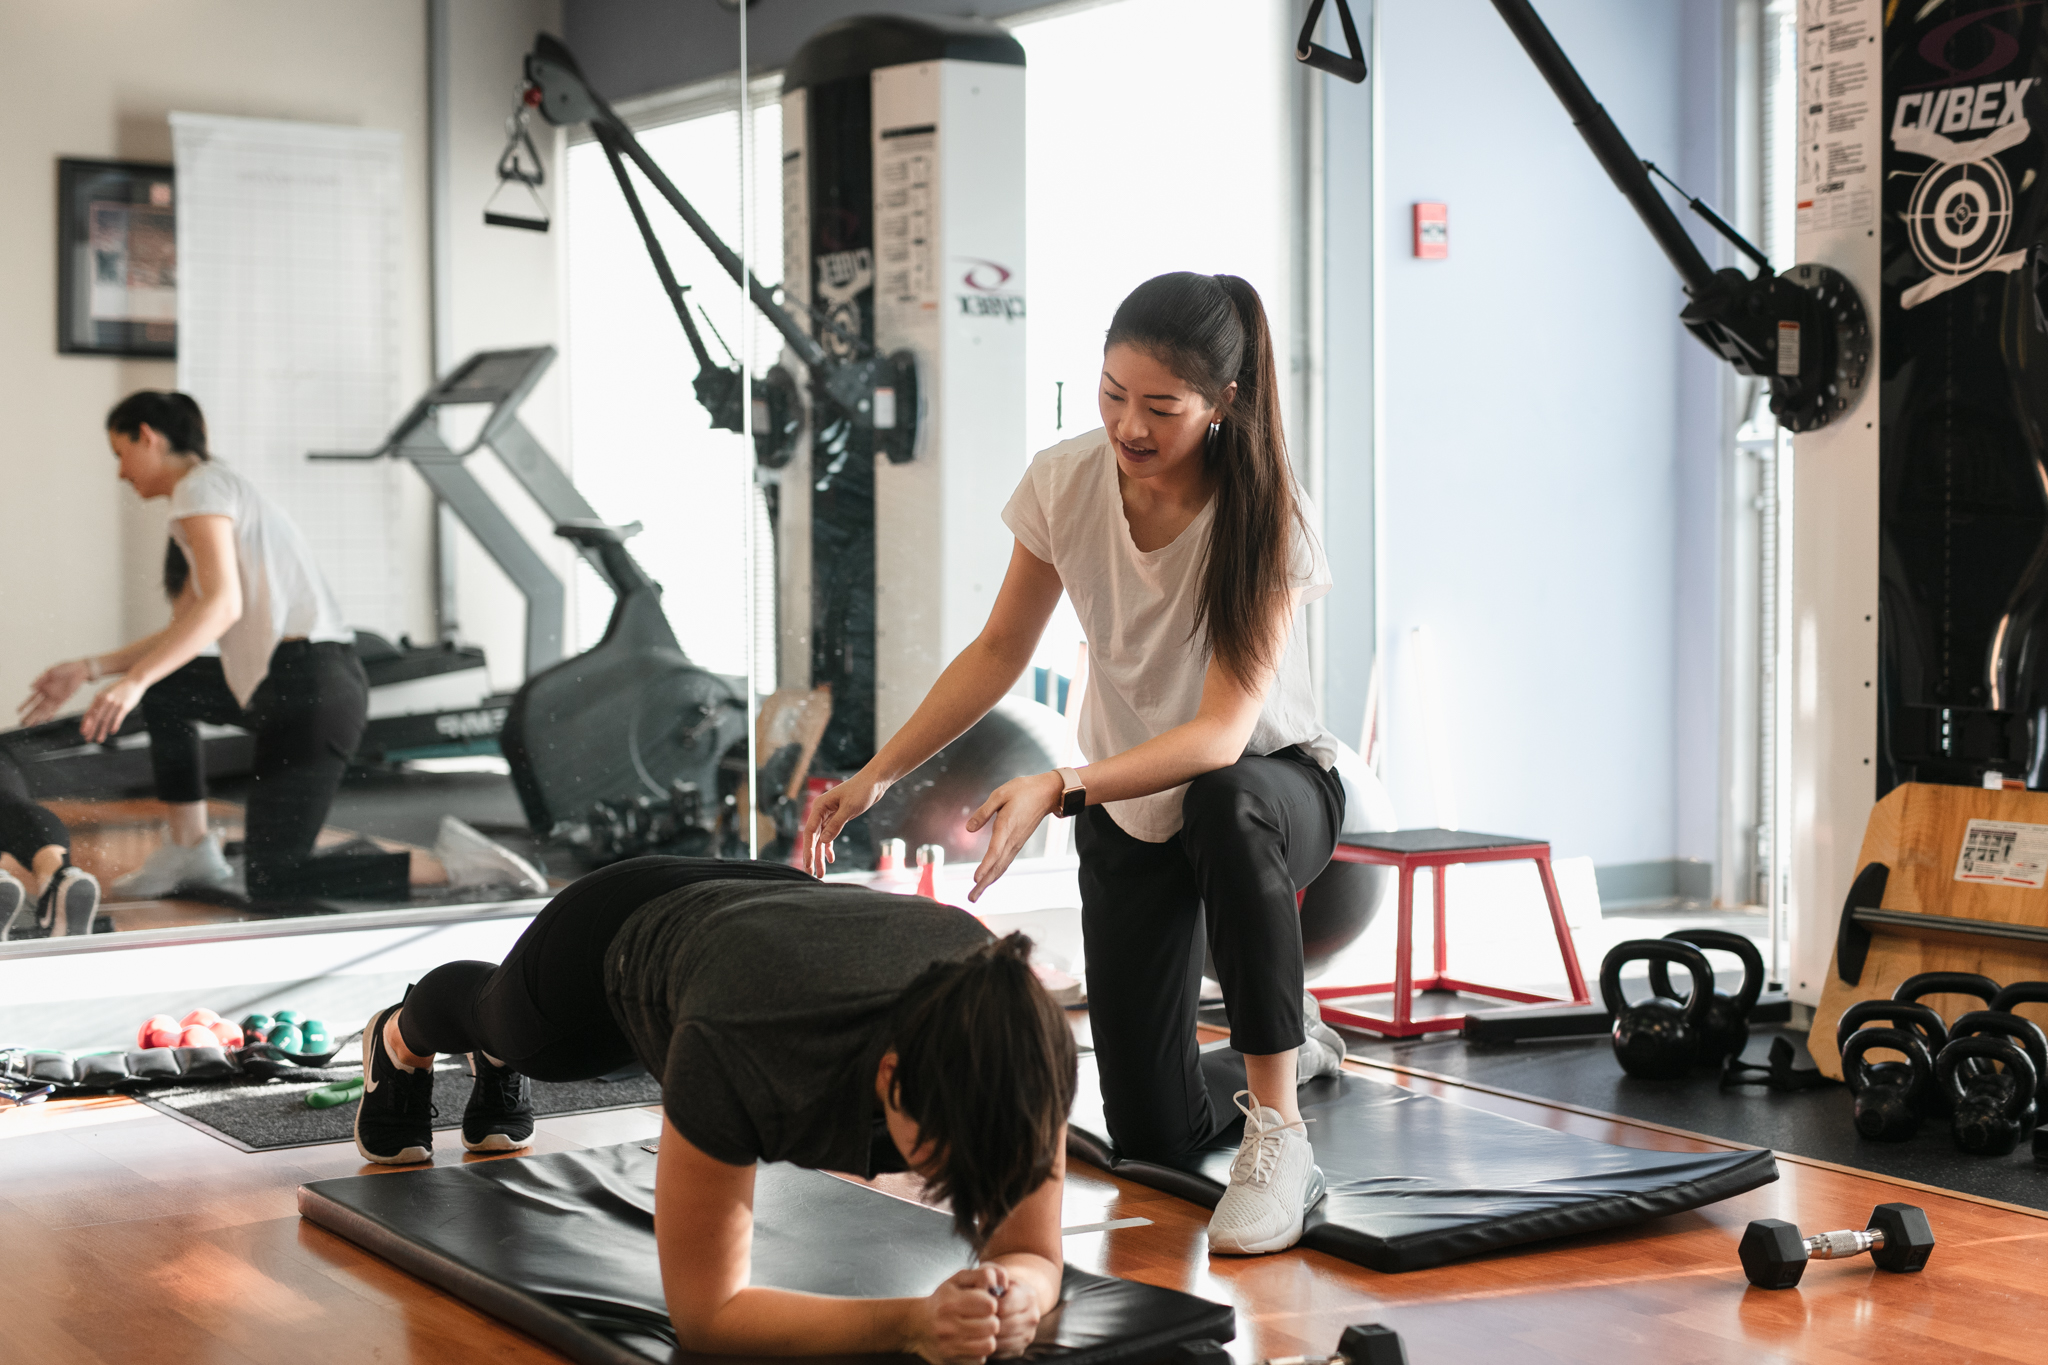 Vancouver Physiotherapy - Allan McGavin Sports Medicine Clinic